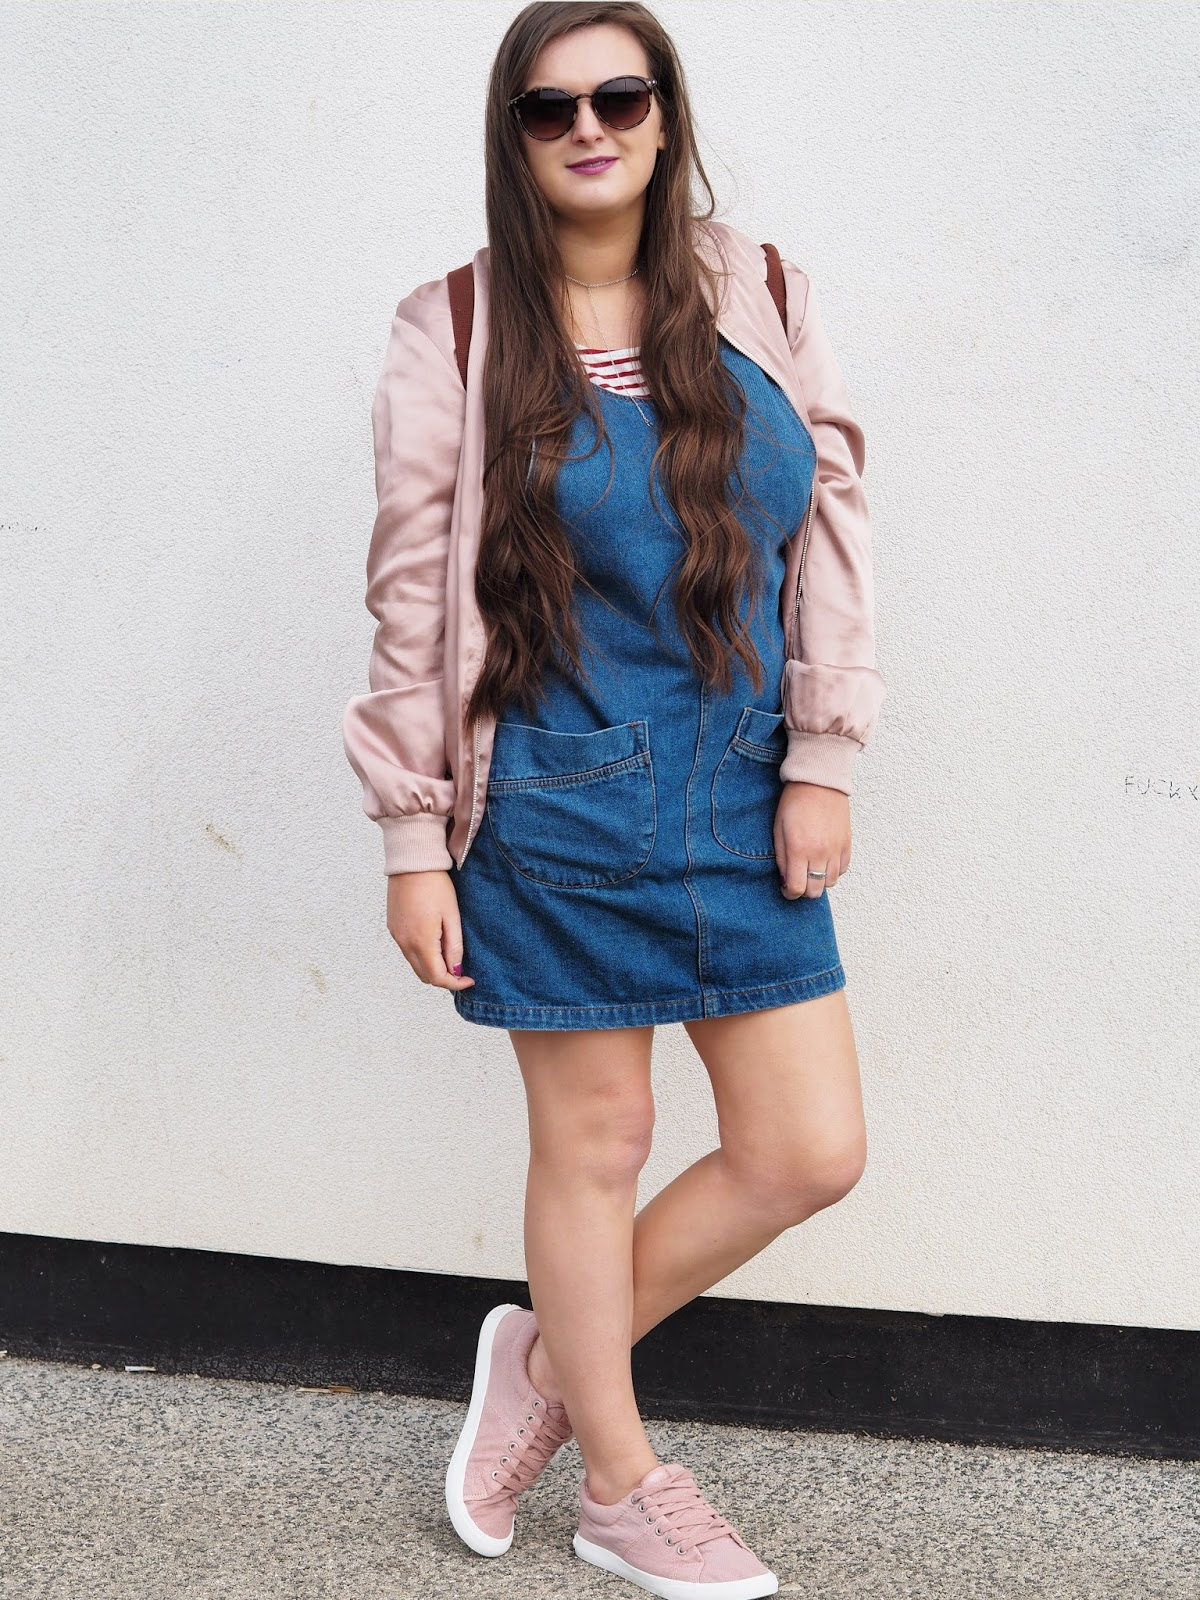 What I Wore to Live at Leeds Festival 2016 - Rachel Nicole UK Blogger